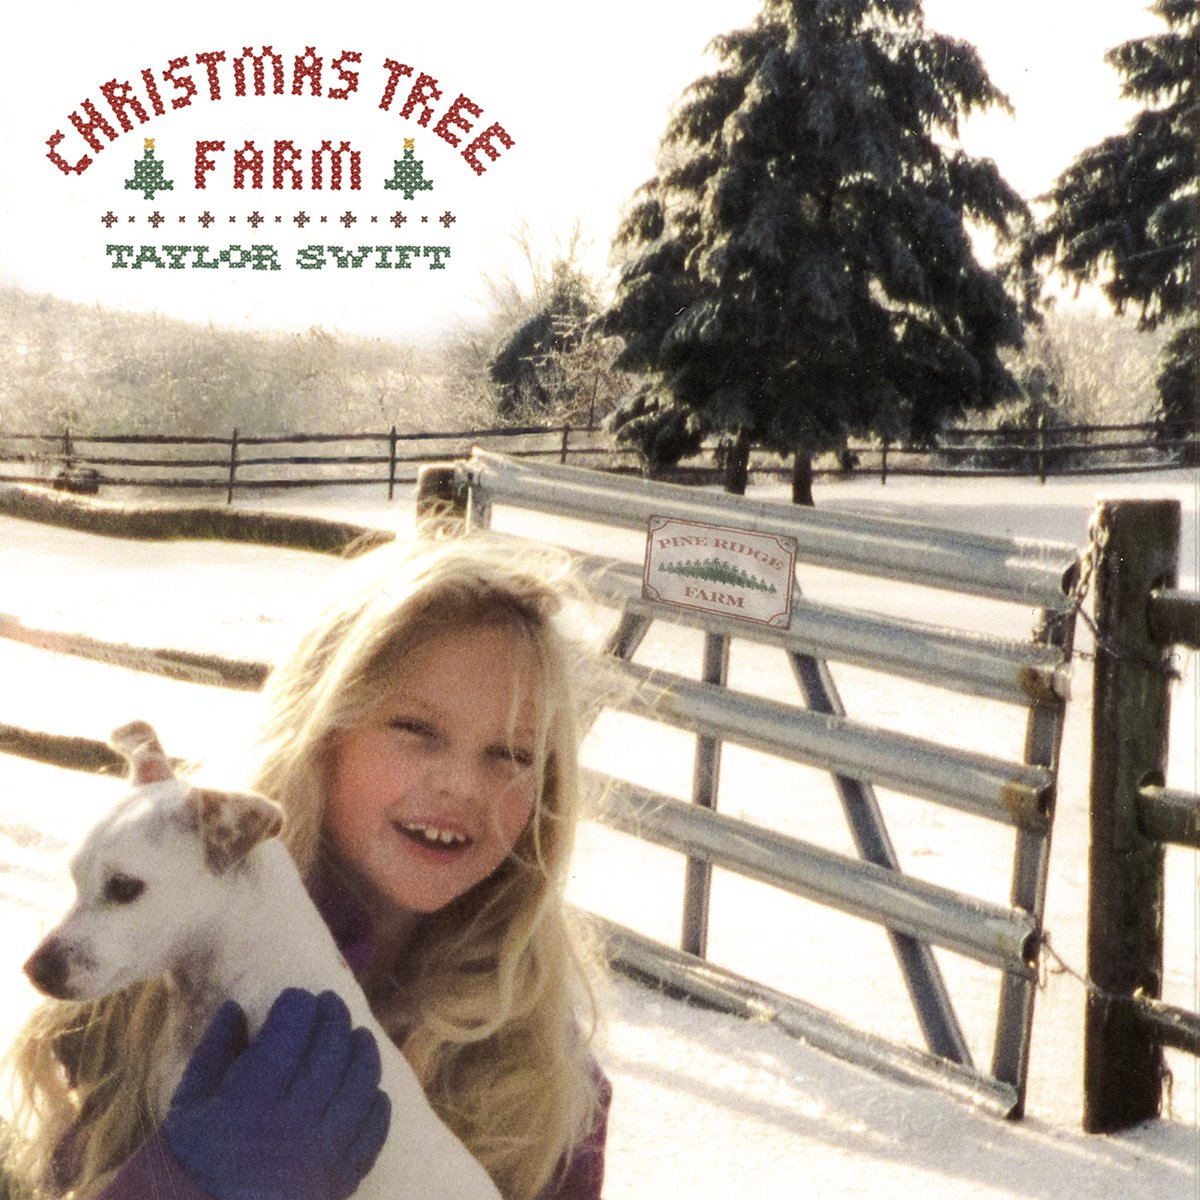 I actually did grow up on a Christmas tree farm. In a gingerbread house, deep within the yummy gummy gumdrop forest. Where, funnily enough, this song is their national anthem. #ChristmasTreeFarm song and video out now 🎄taylor.lnk.to/XMASTreeFarm